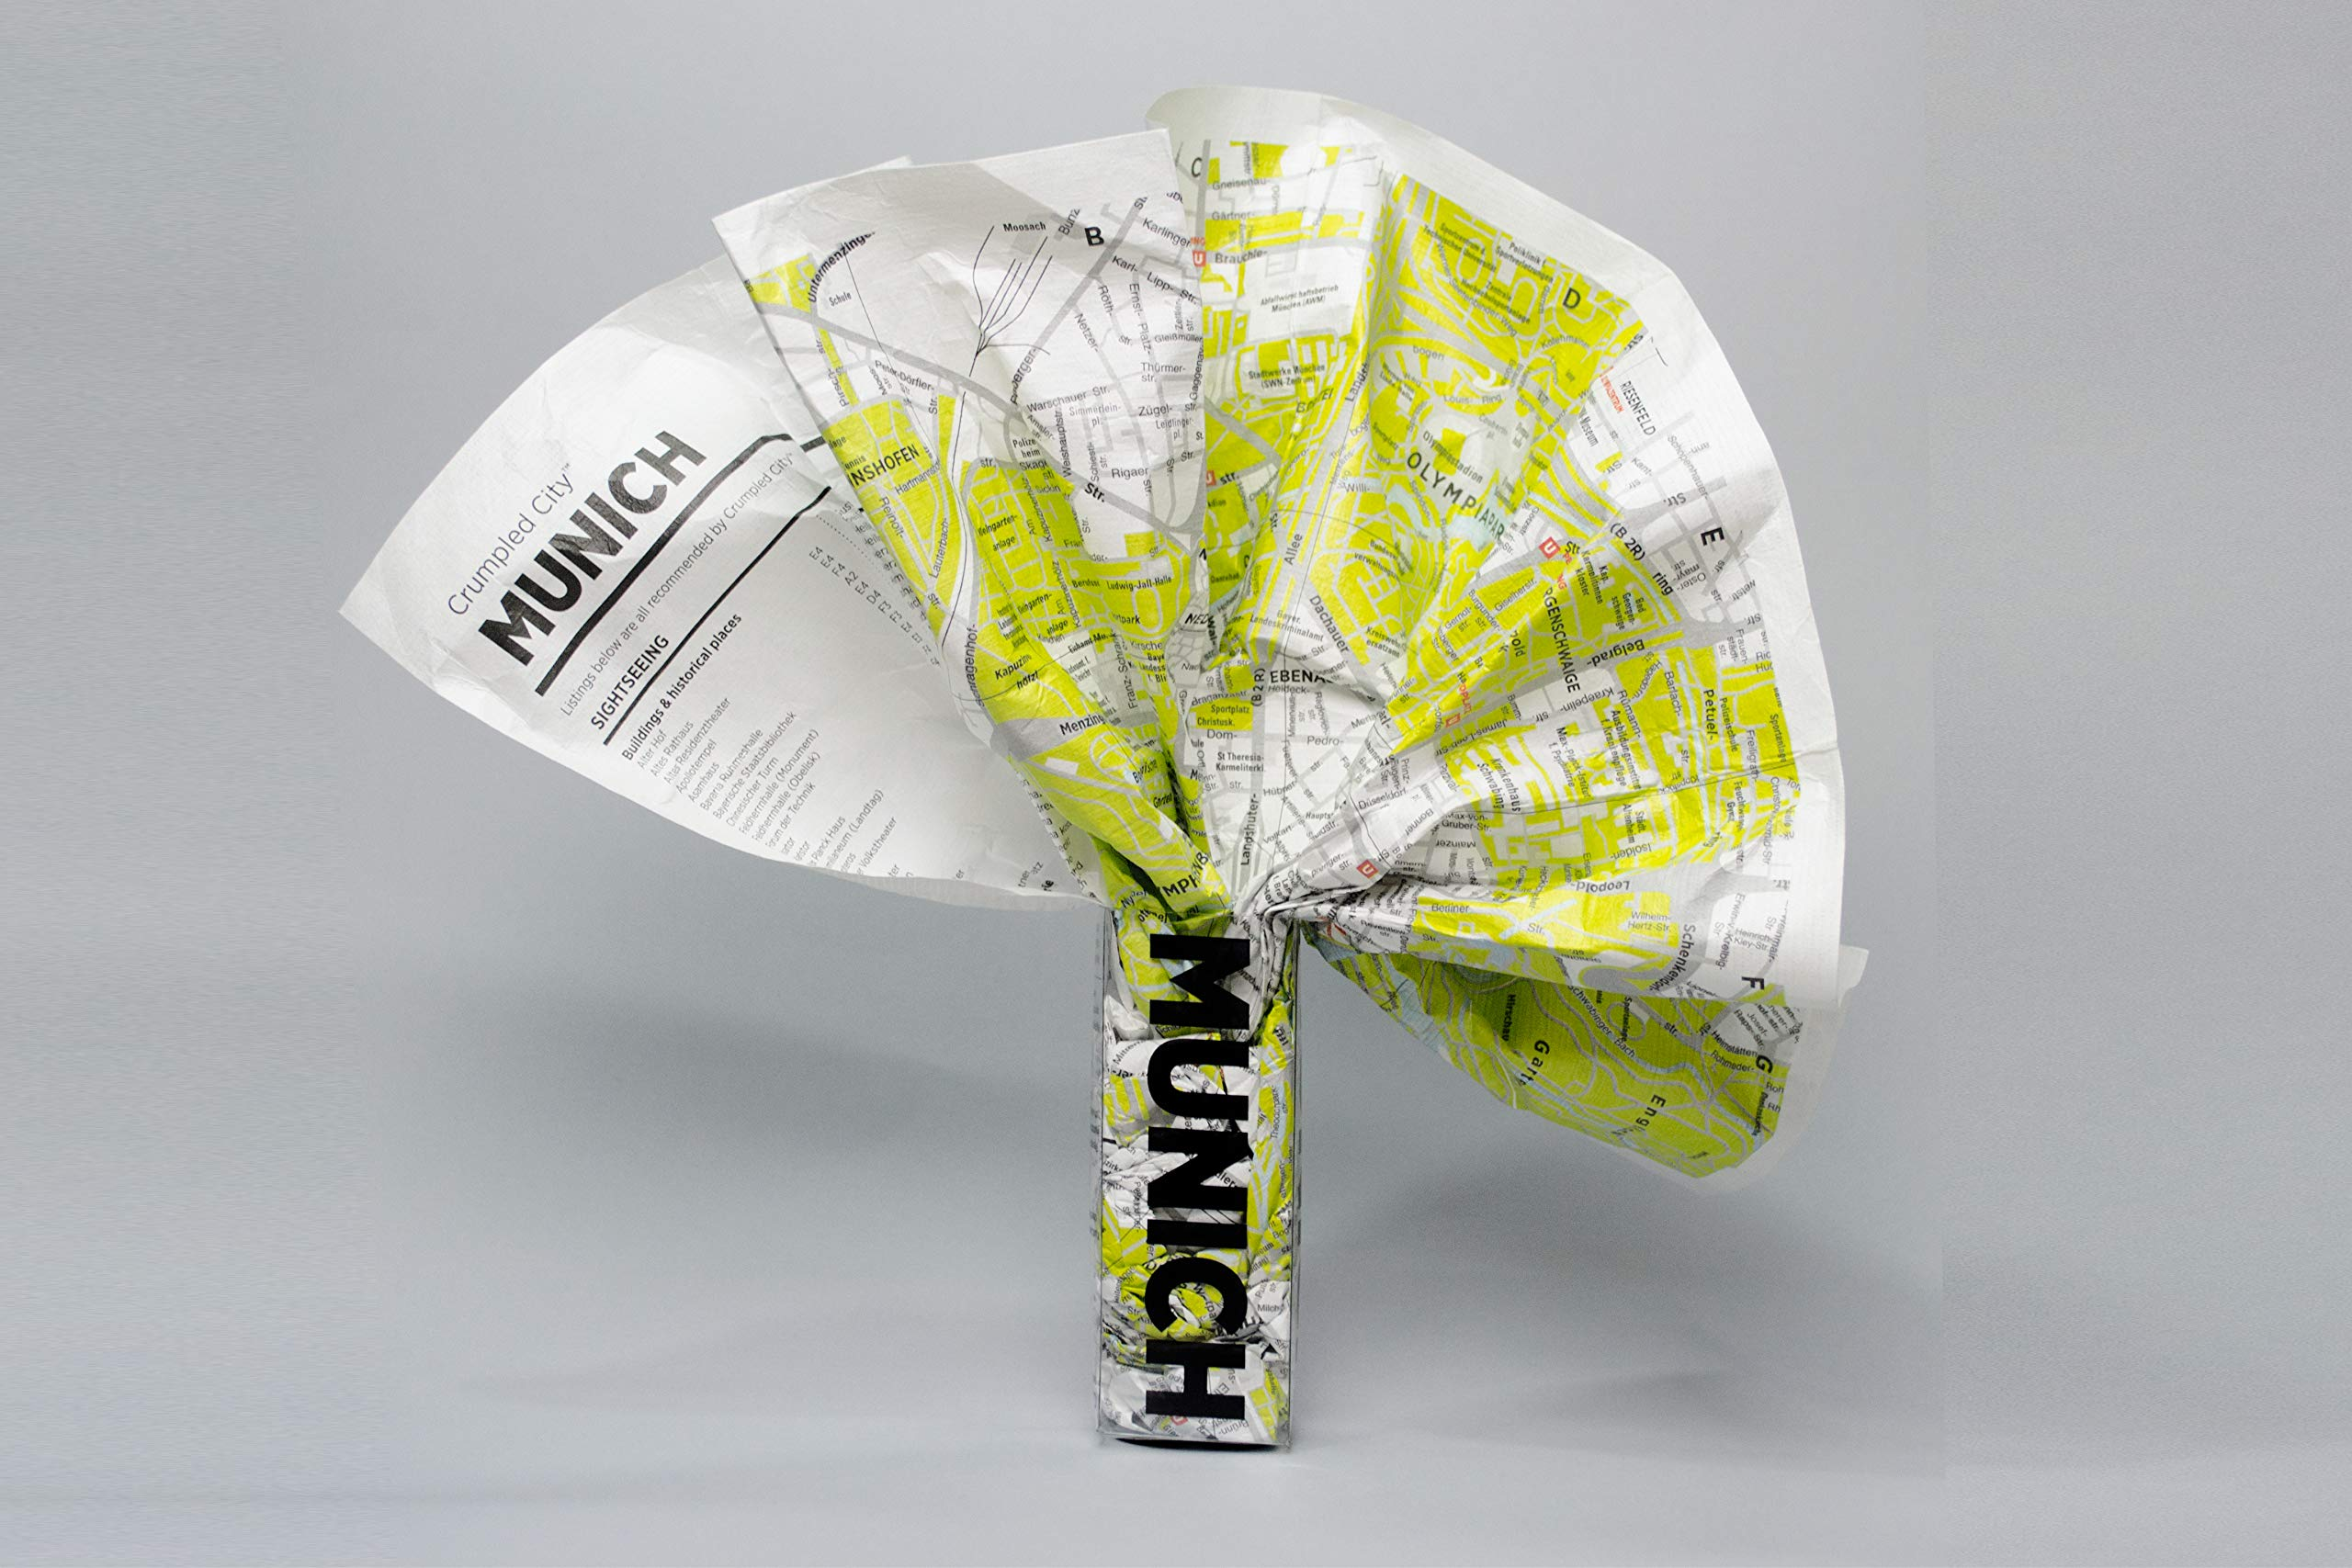 Crumpled City Map-Munich: Palomar S.r.l.: 9788897487197 ...